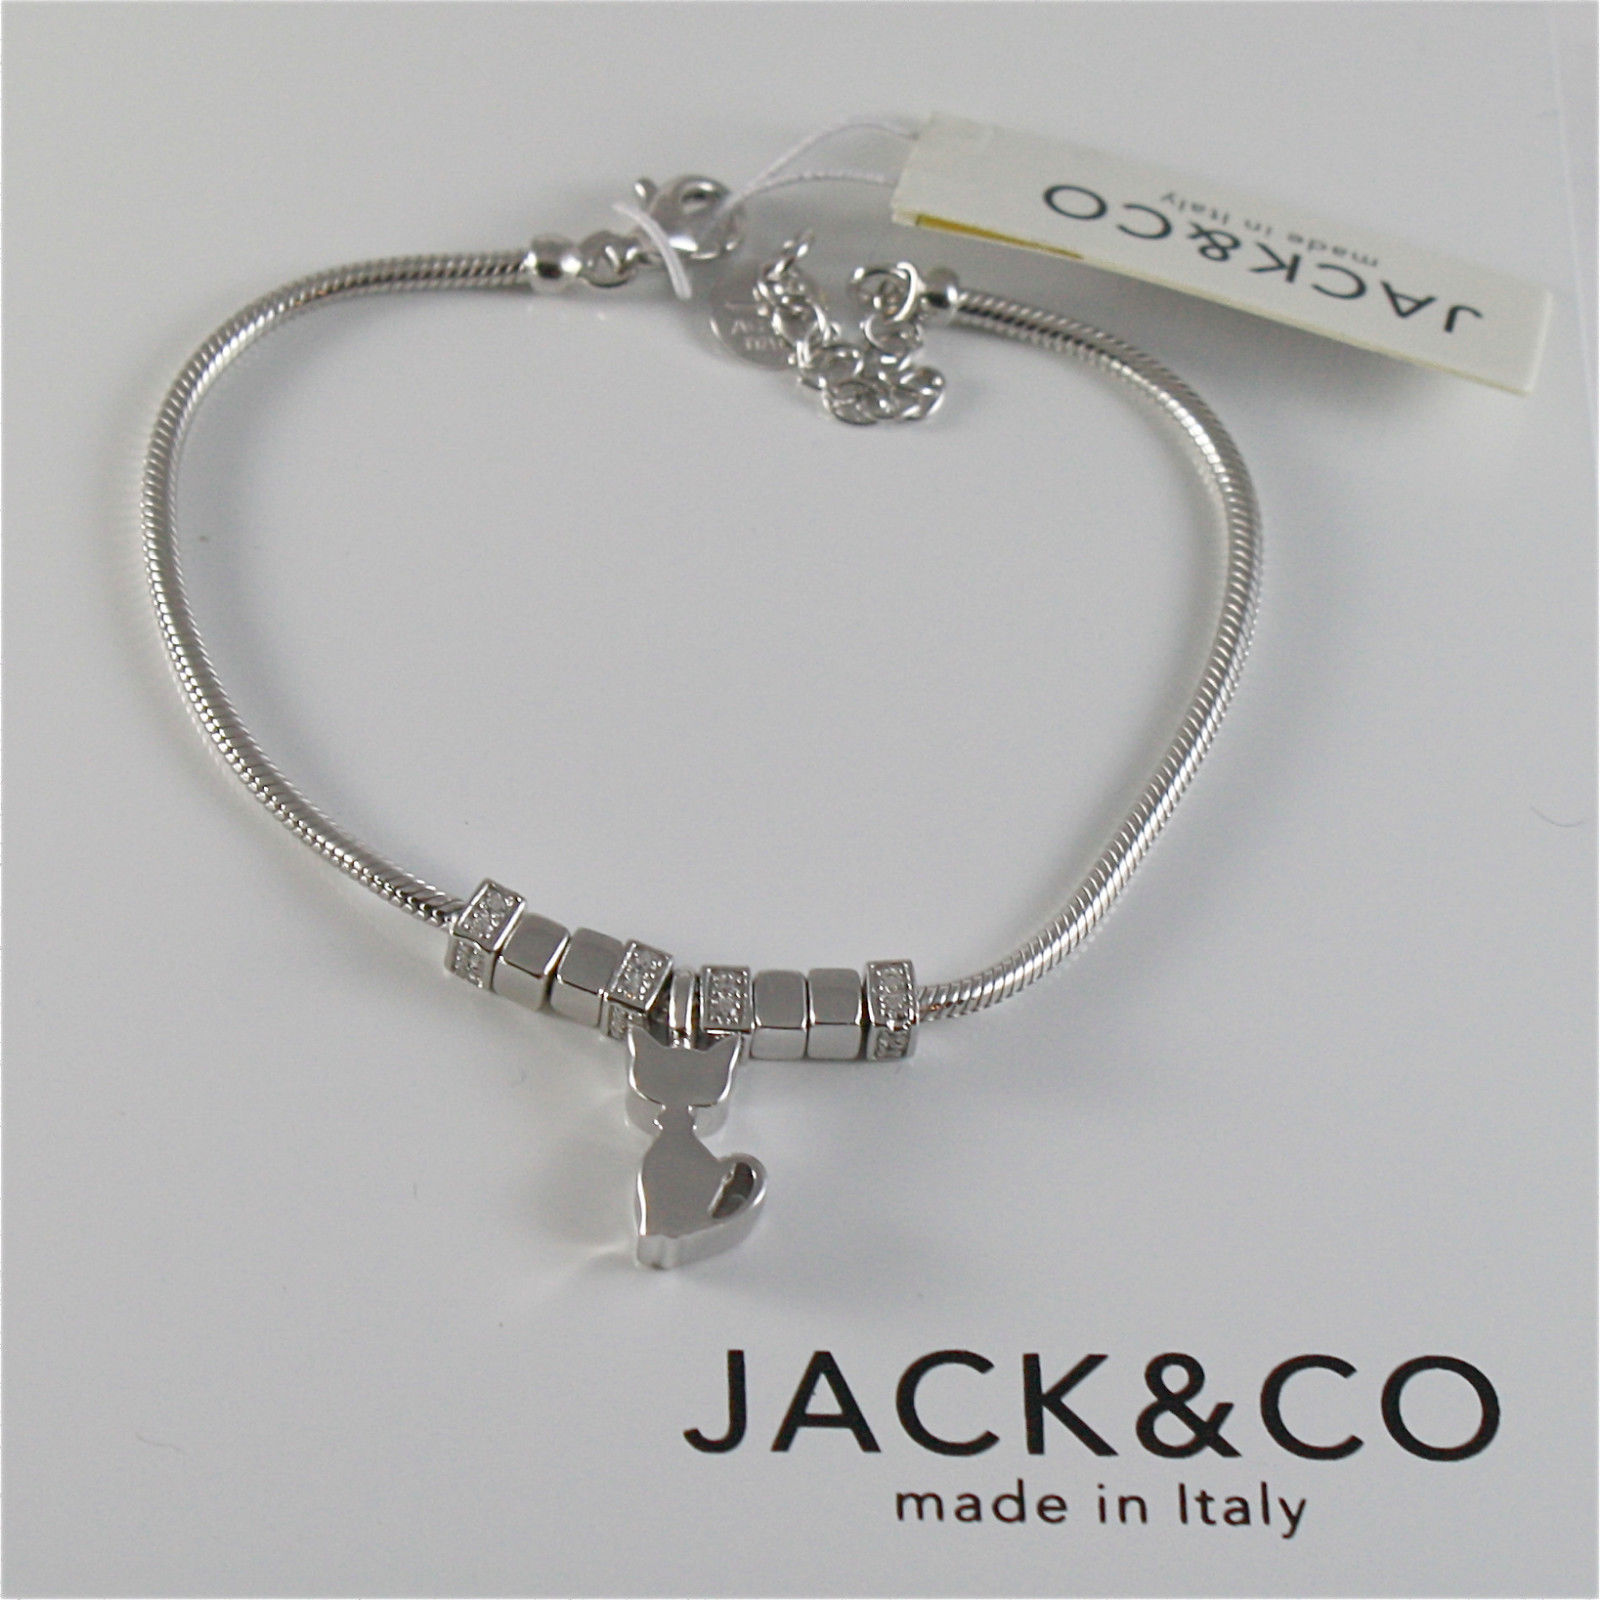 925 RHODIUM SILVER JACK&CO BRACELET WITH SHINY CAT KITTEN,  MADE IN ITALY 7.5 IN